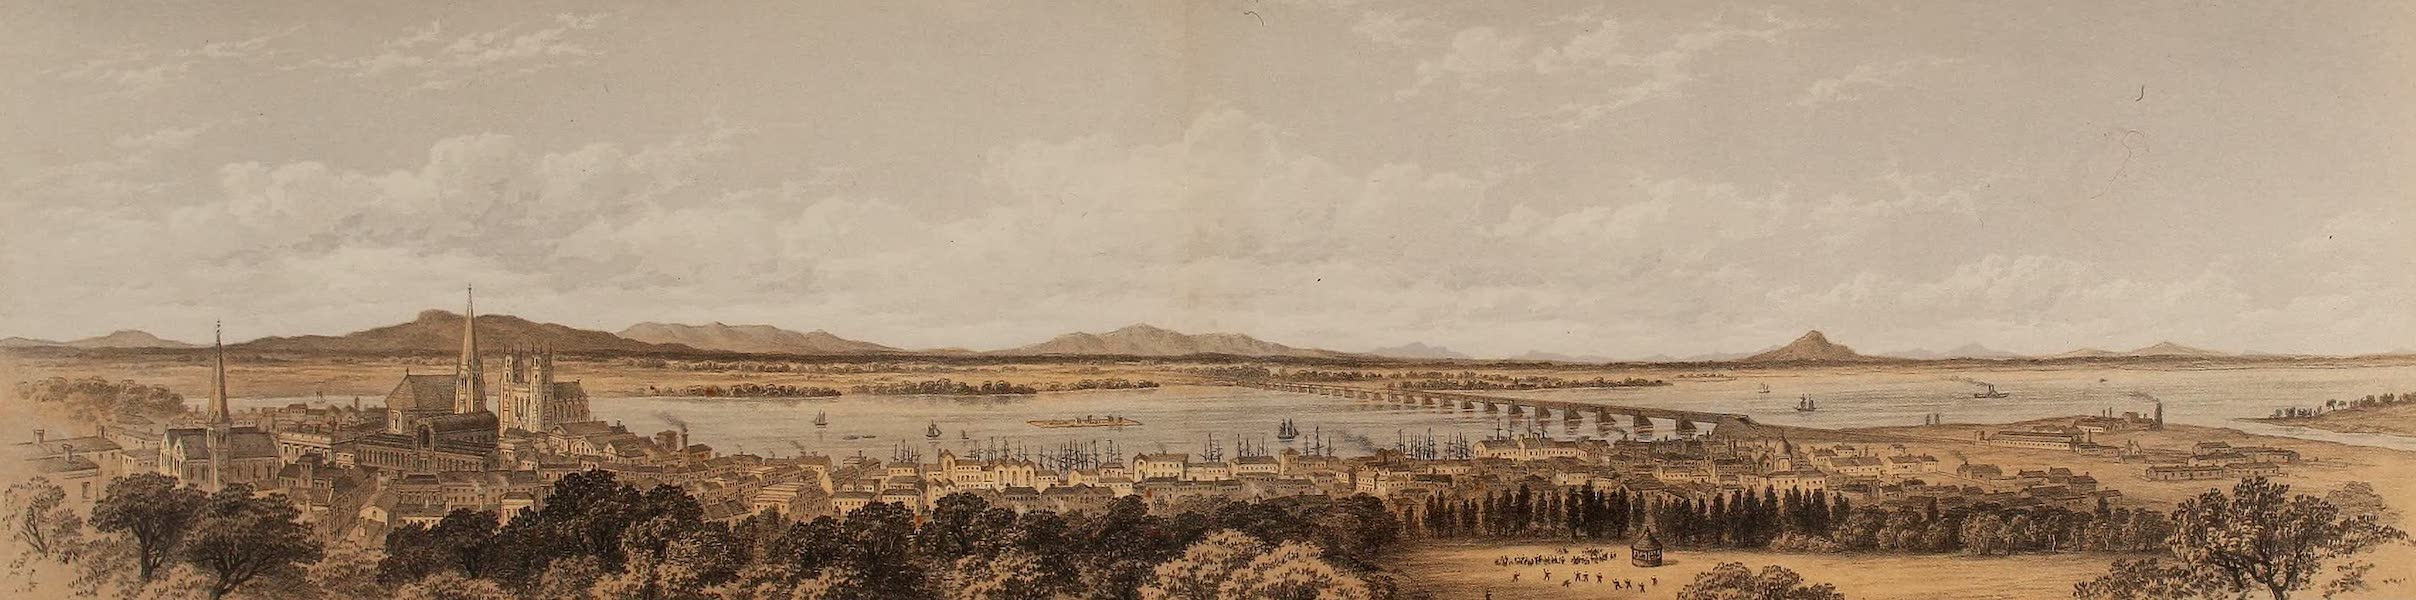 Journal of the Progress of H.R.H. the Prince of Wales - Montreal from the Prince's Balcony (1860)